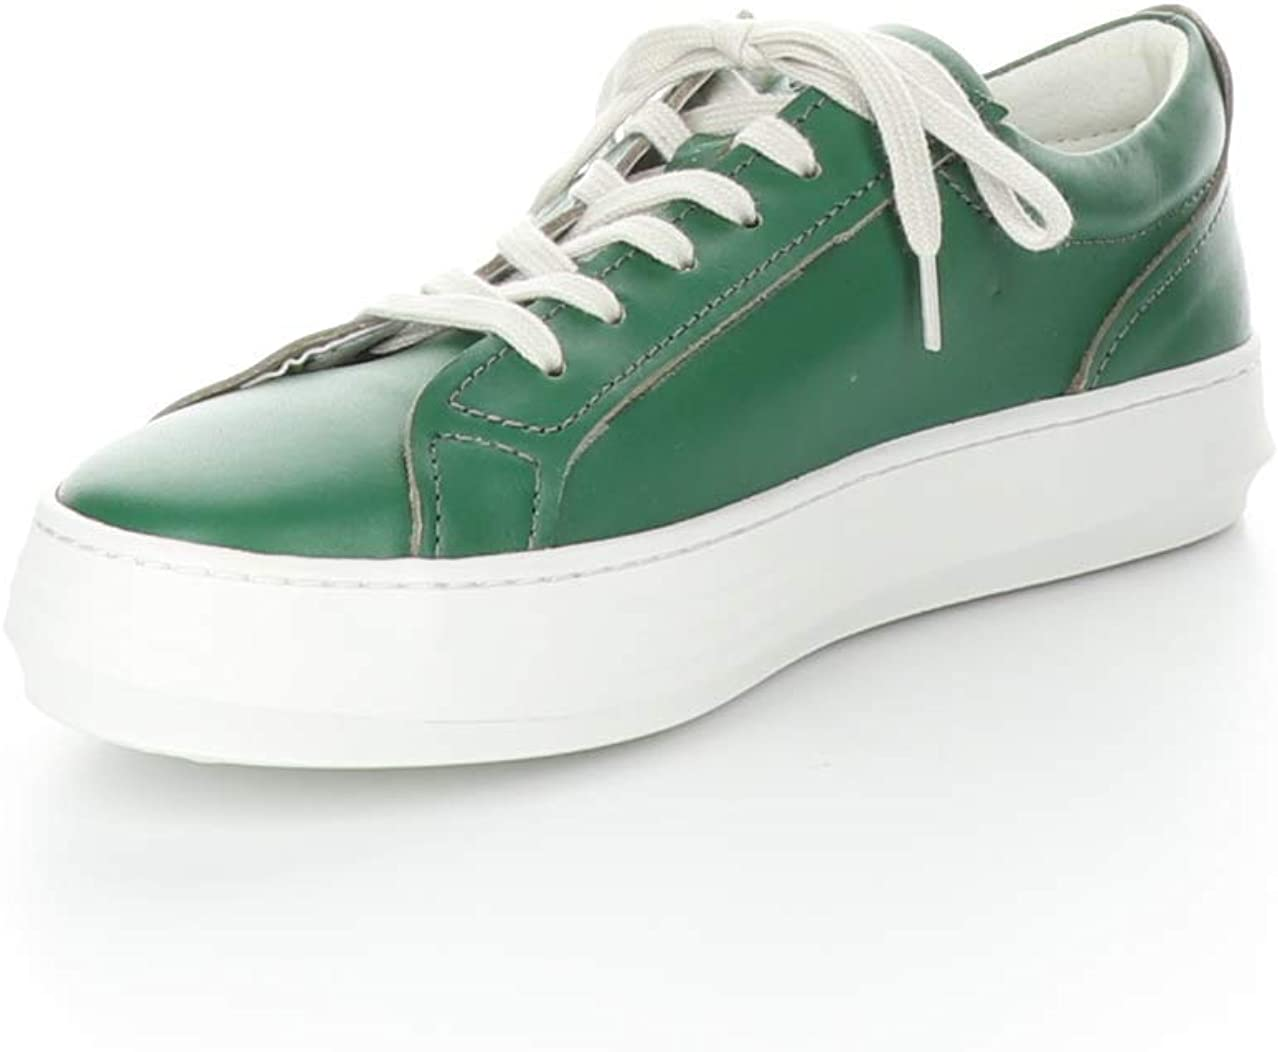 FLY London Women's Low-top Trainers Green Green Grey 010